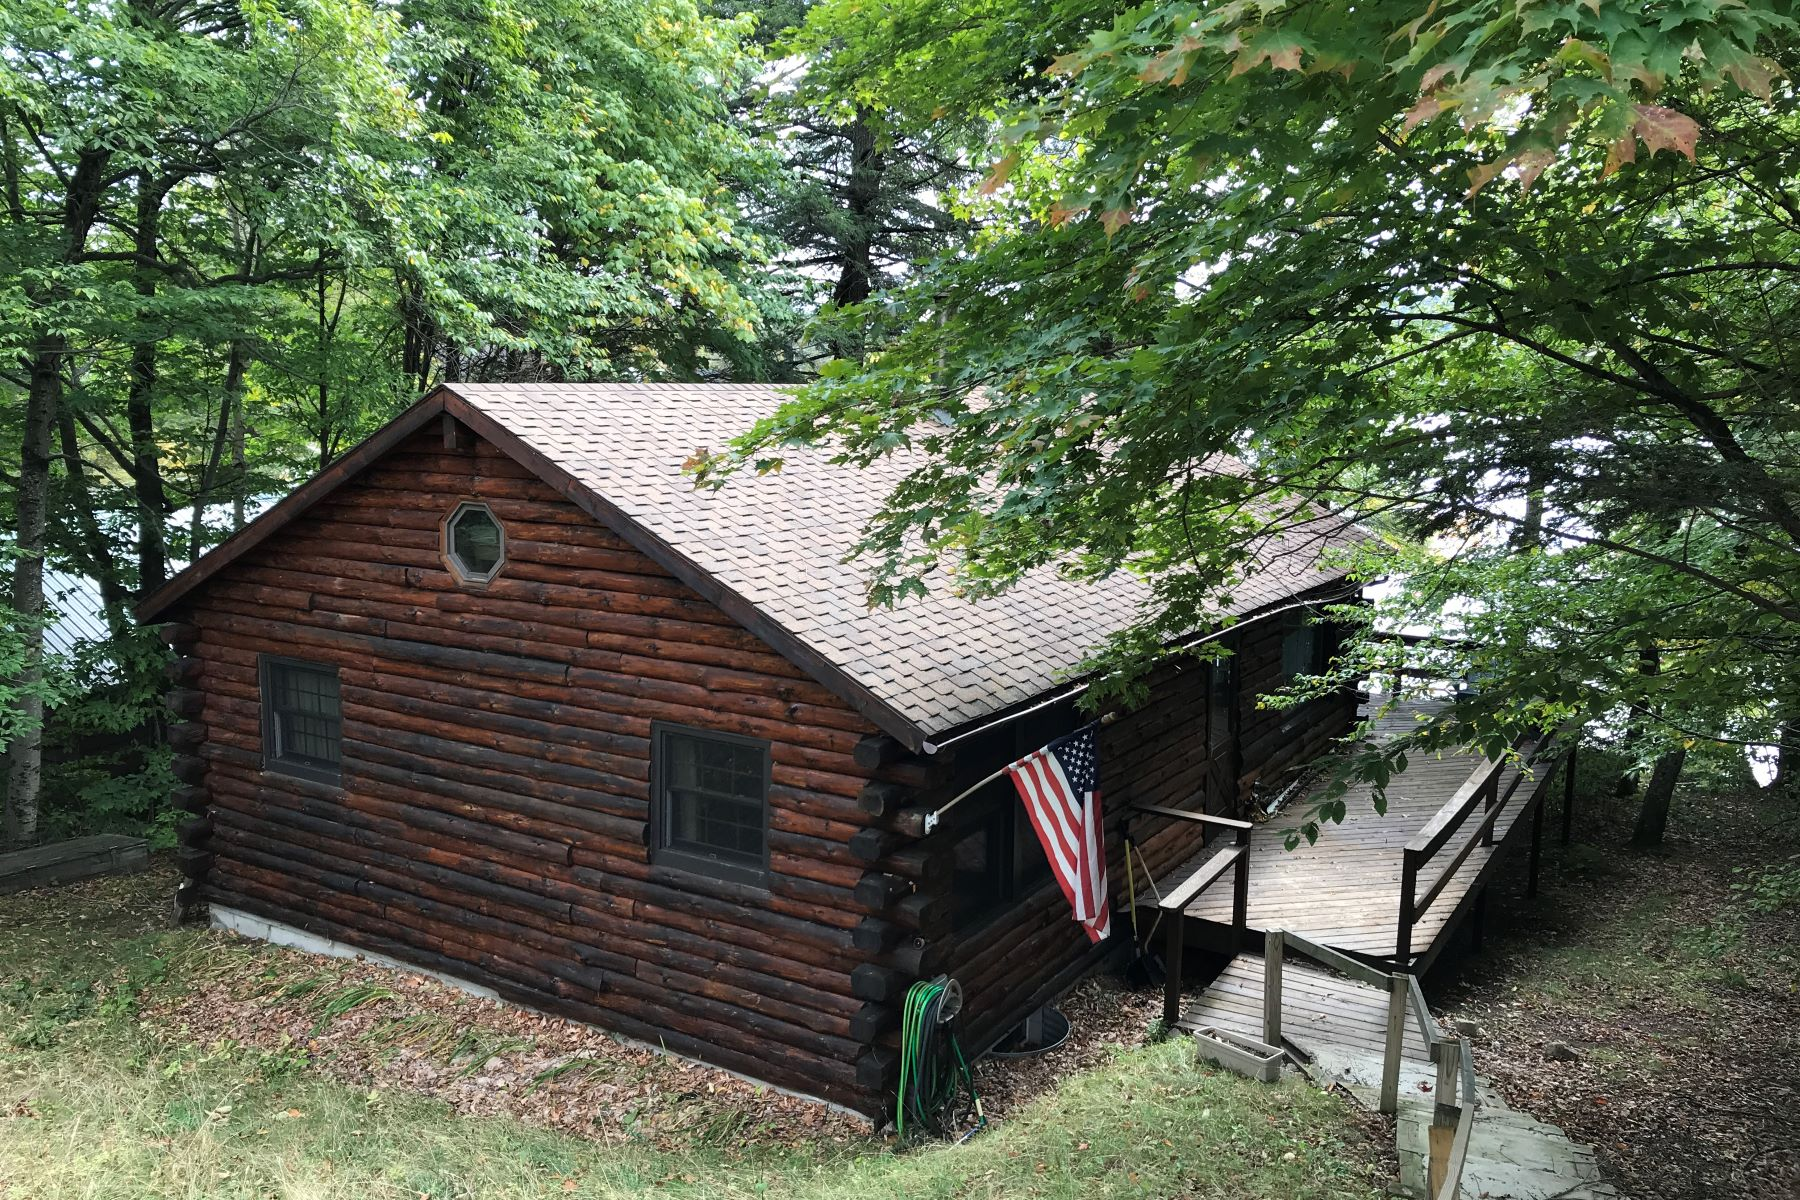 Single Family Homes for Active at 4 season lakeside Camp 8955 State Route 30 Blue Mountain Lake, New York 12812 United States